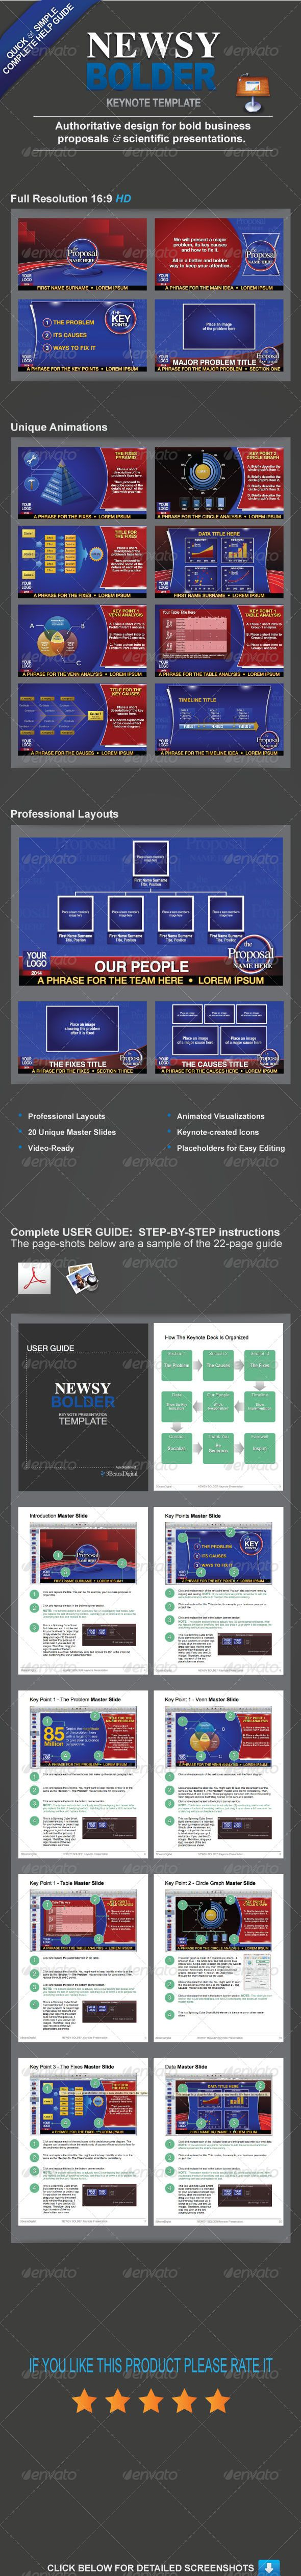 Newsy Bolder   Animated Keynote Template  #GraphicRiver         Overview  NEWSY BOLDER Keynote Presentation with custom Keynote-native graphic elements and animated visualizations. All you need is Keynote. All graphic elements are created in Keynote so it's the only application required. Ideal for business, science and personal use. Create your own presentation in 20-30 minutes using the 20 easy-to-use Master Slides and complete user guide.    Features   All Keynote-created Graphics  No…